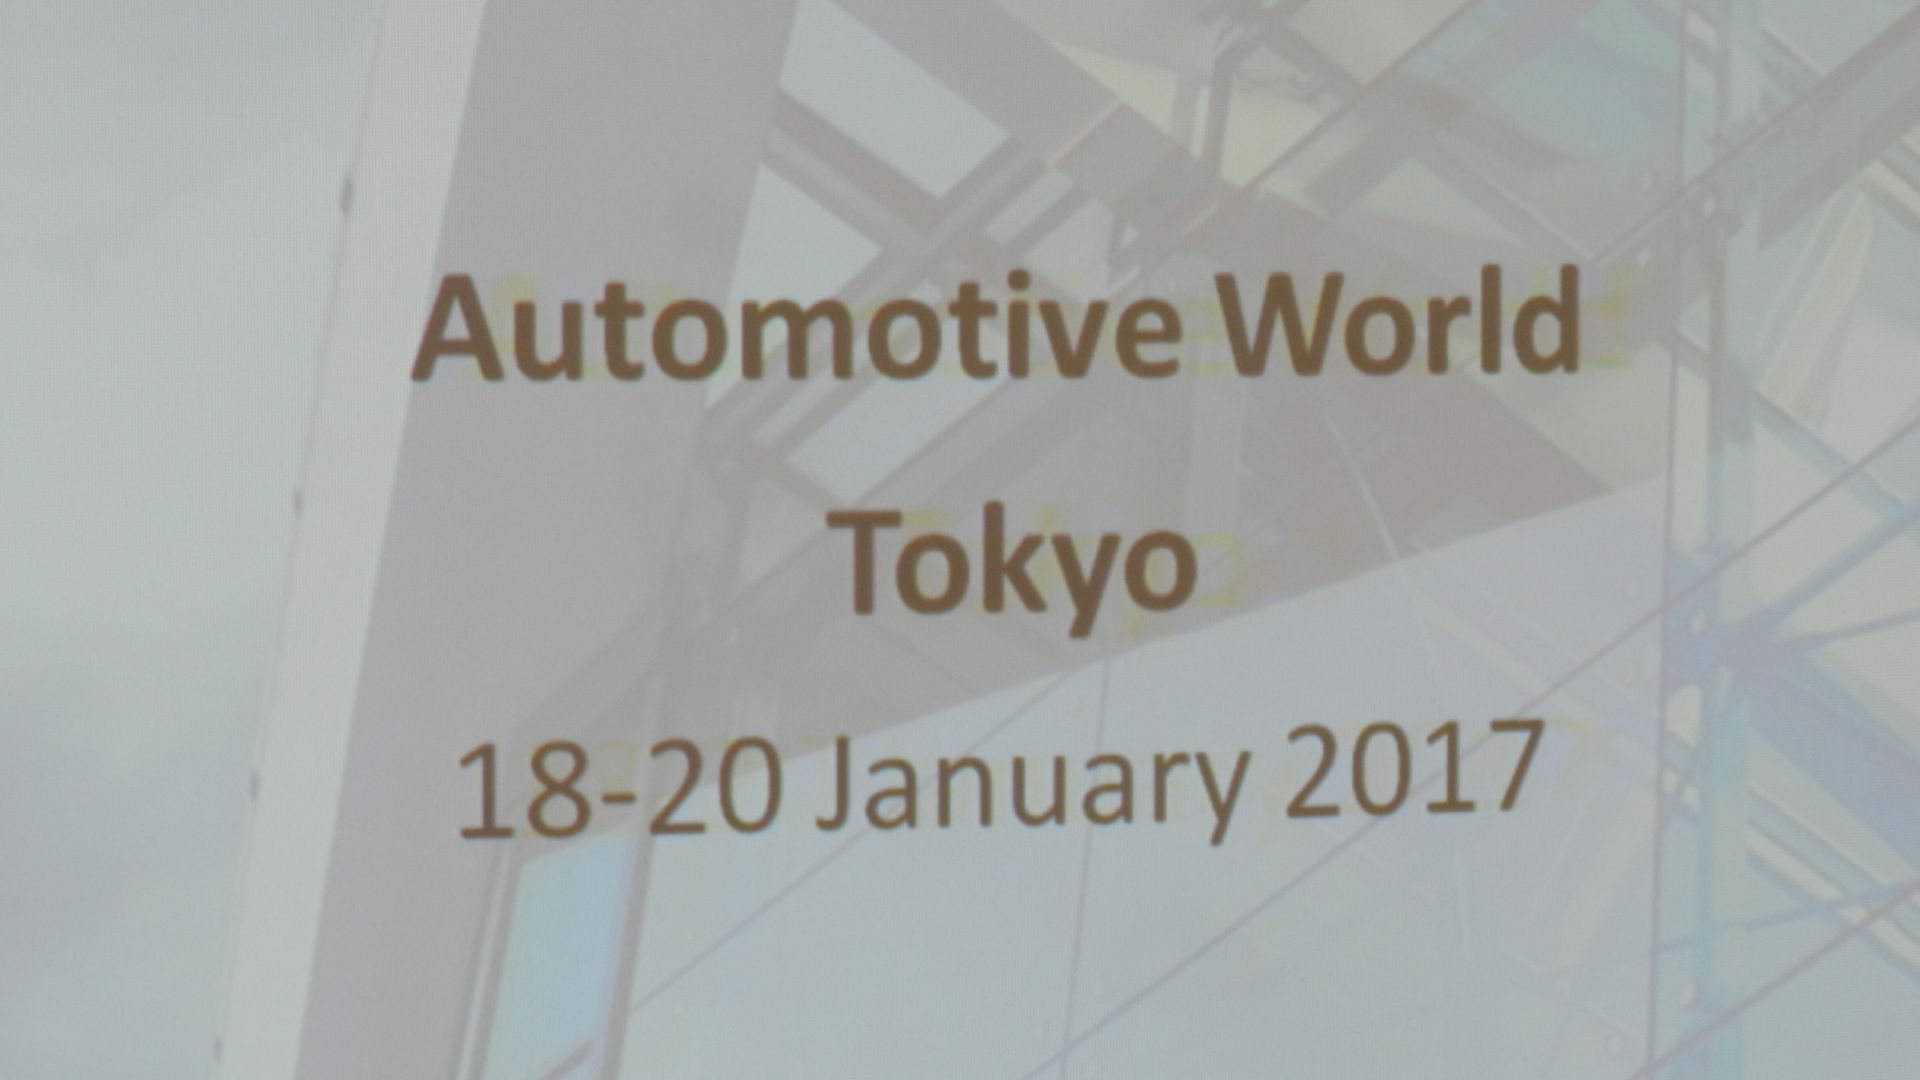 Hungarian SMEs at the Tokyo Automotive World Exhibition in Japan